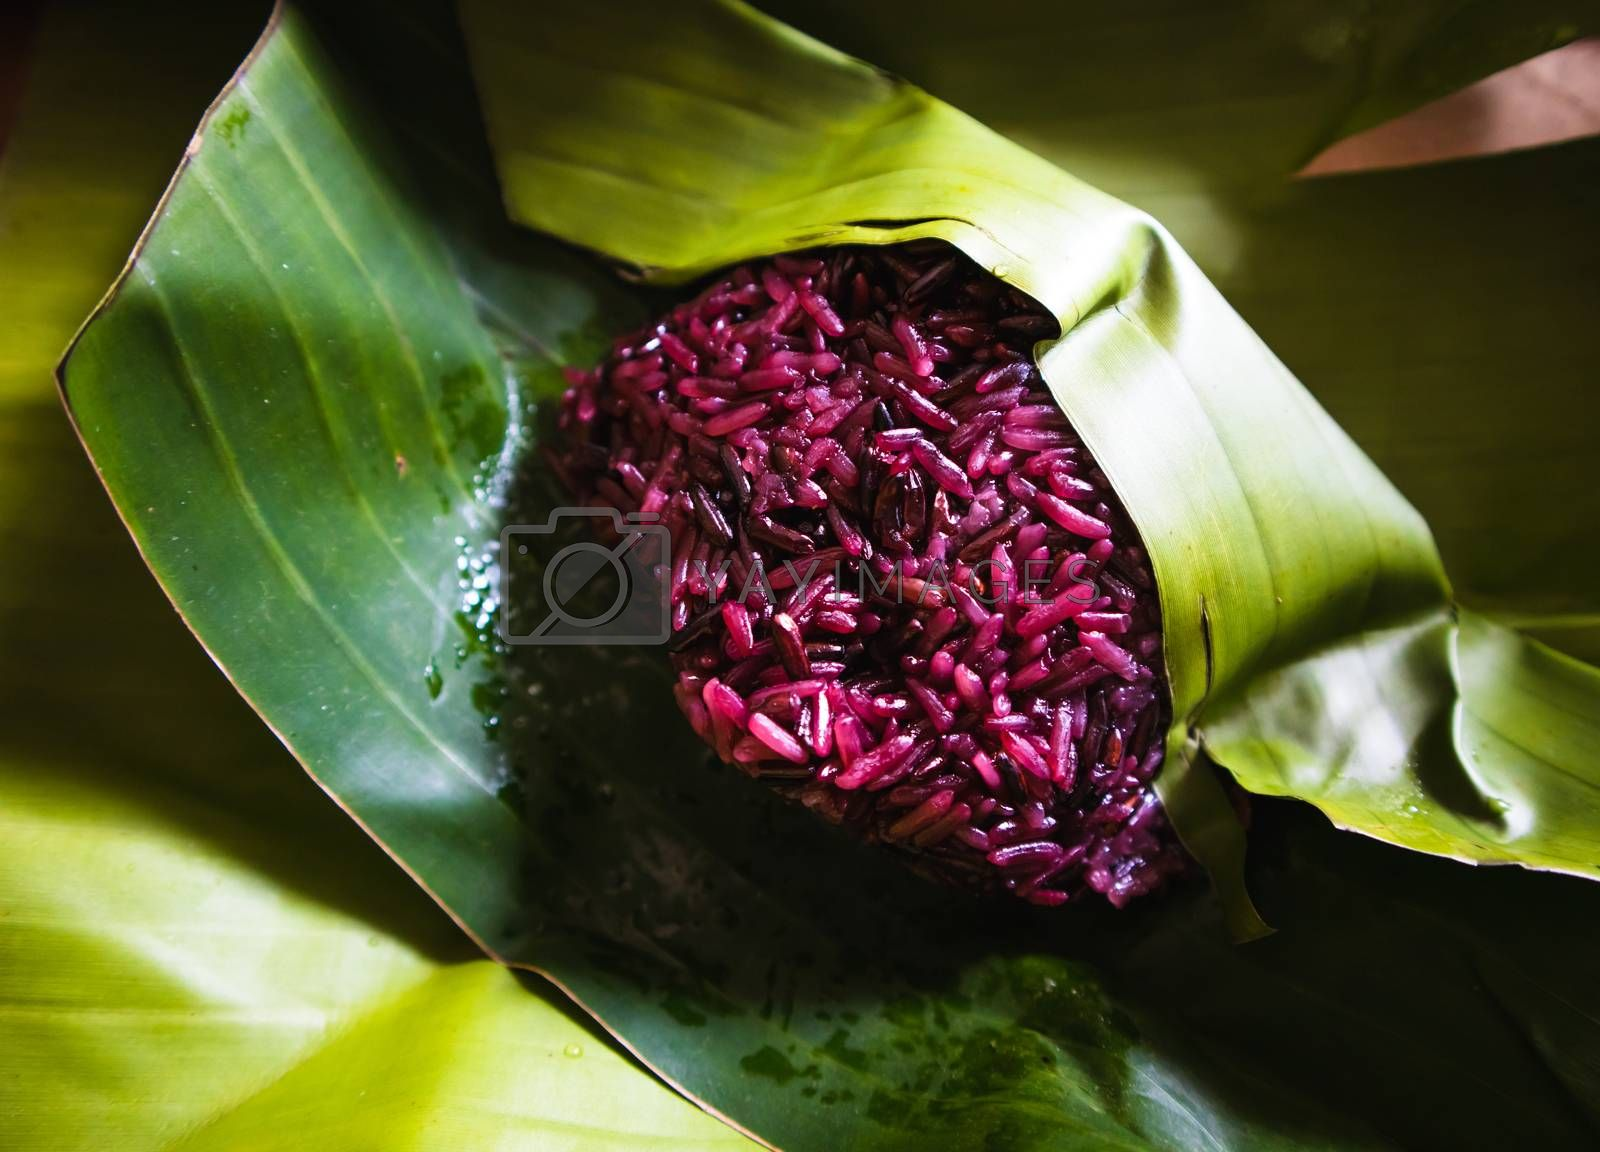 Steamed Purple sticky rice on banana leaf package close up shot. Organic food background concept.